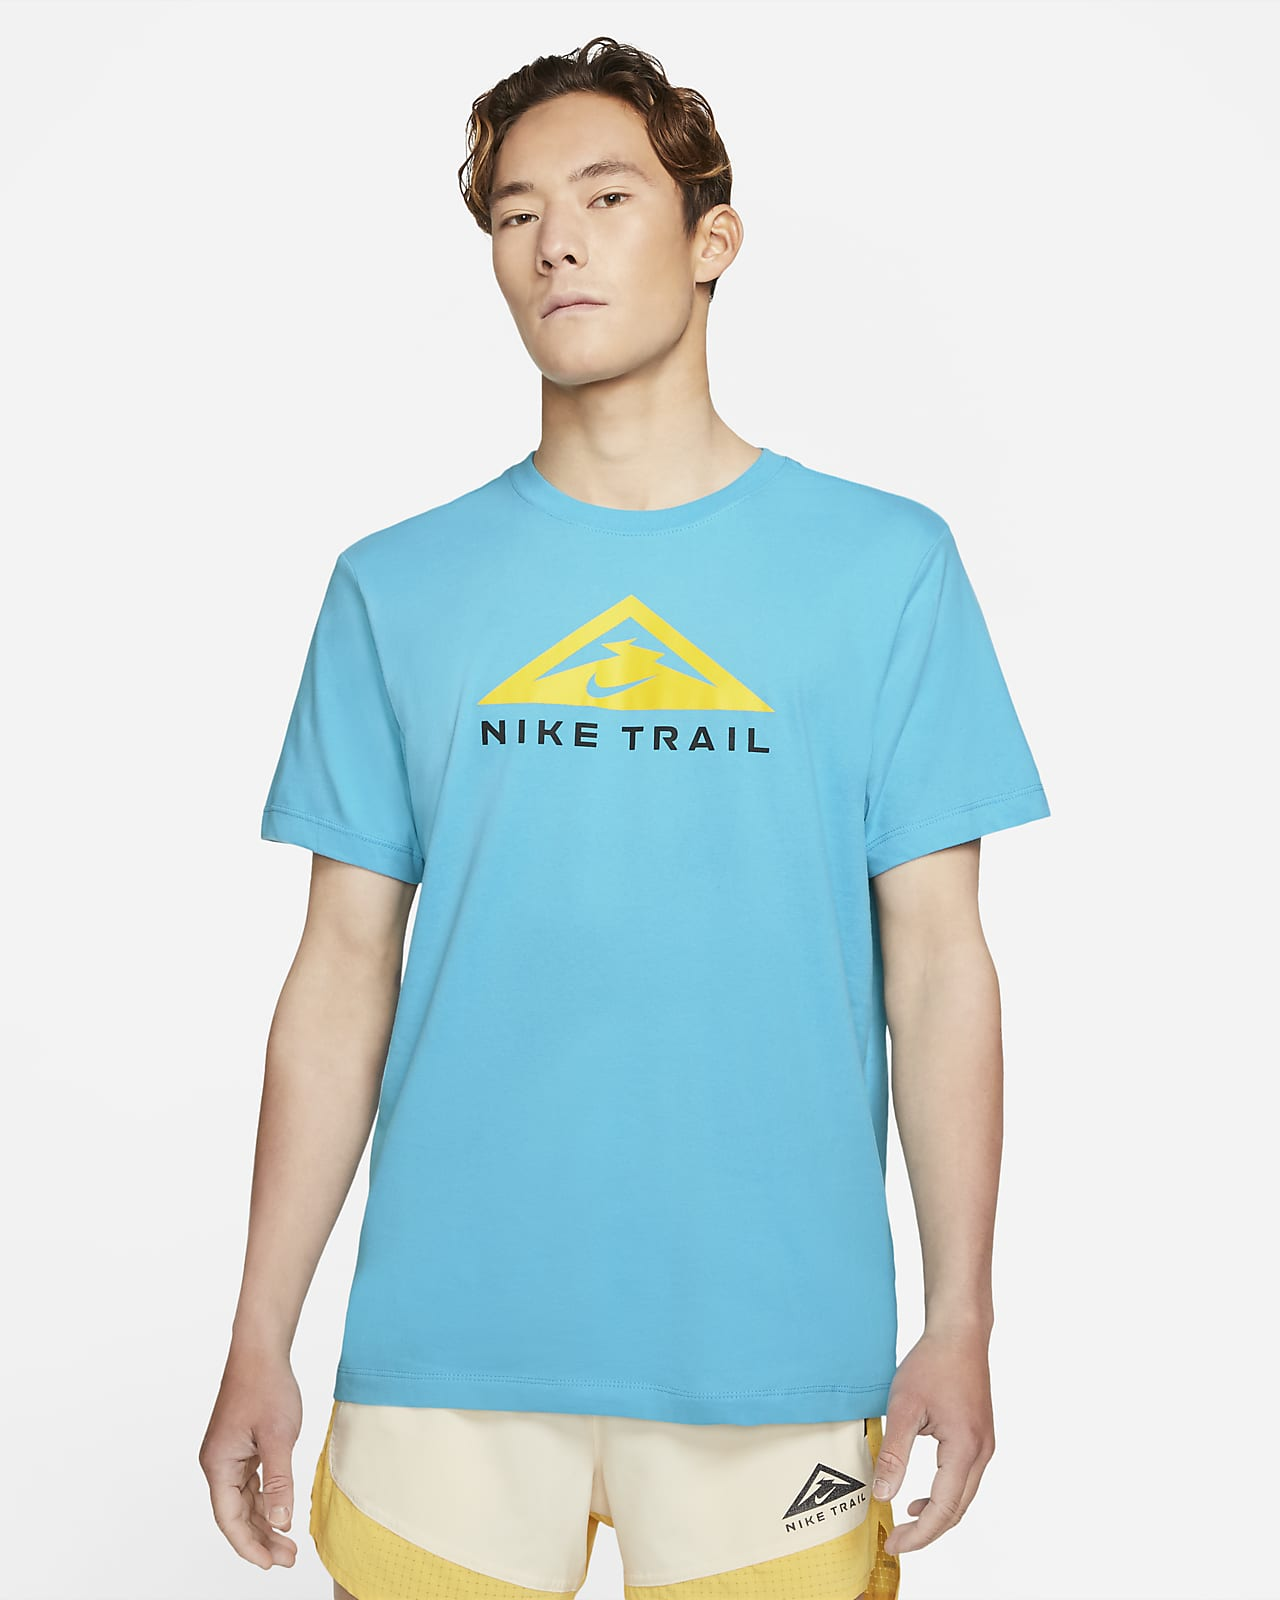 Nike Dri-FIT Short-Sleeve Trail Running T-Shirt